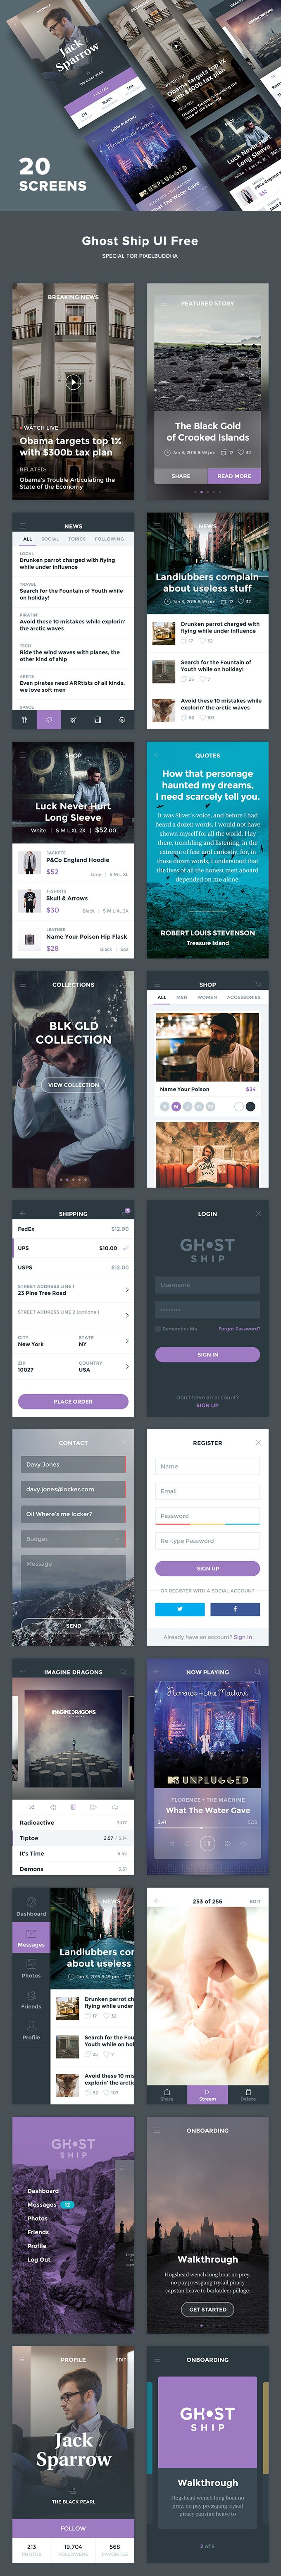 Free Download : Ghost Ship Mobile UI Kit (20 Screens)